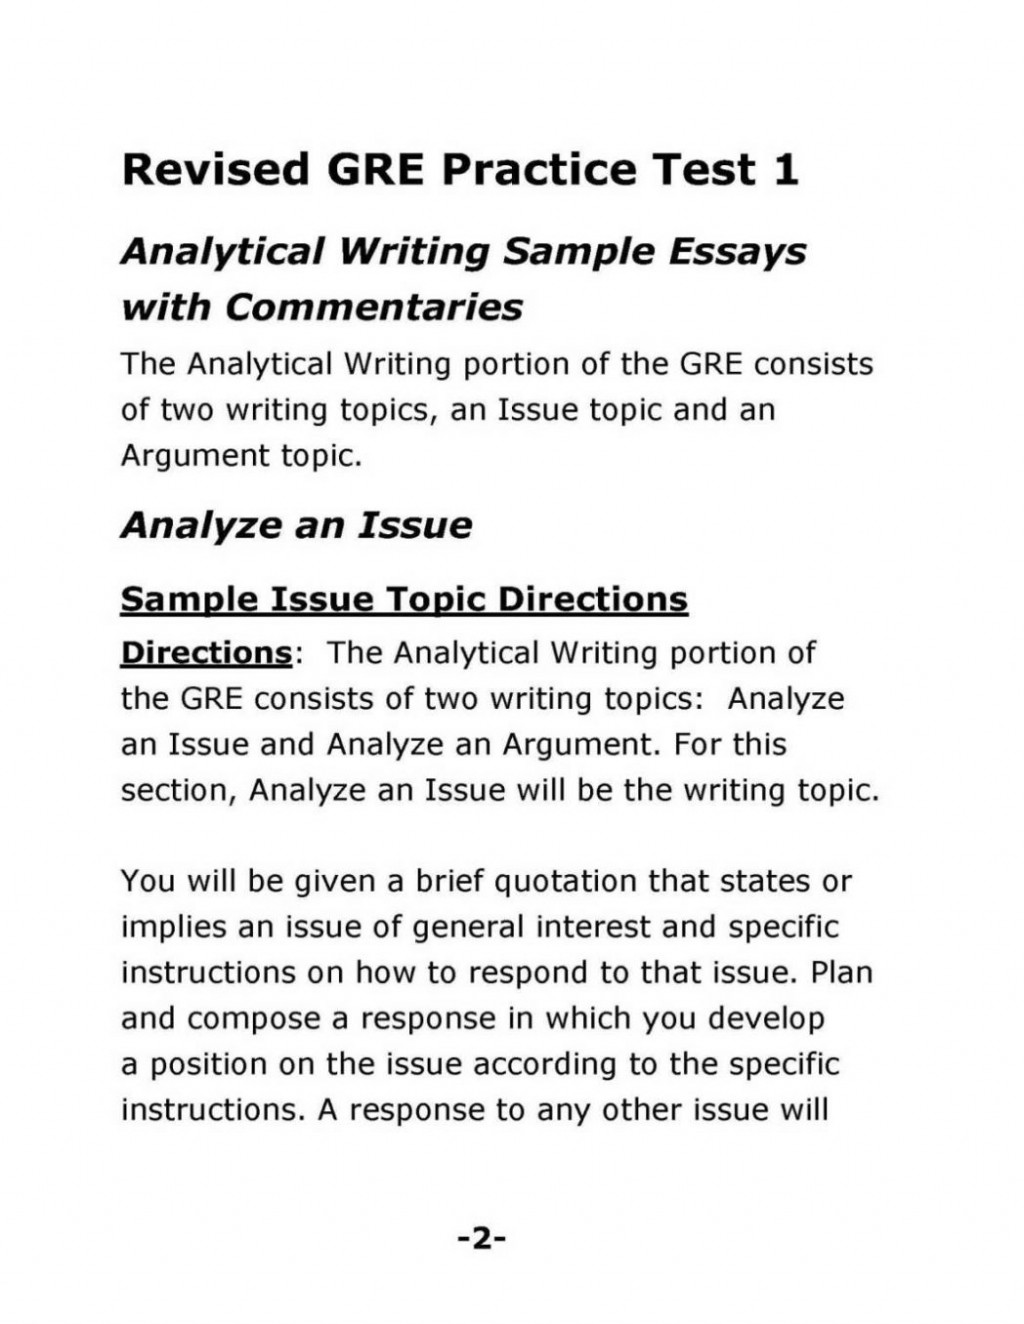 005 Gre Essay Topics Argumentative Analysis Thesis For Literary Questions List Sample Test Papers With Soluti Real Pool Issue Common Answers To Pdf Argument And 1048x1356 Rare Magoosh Large